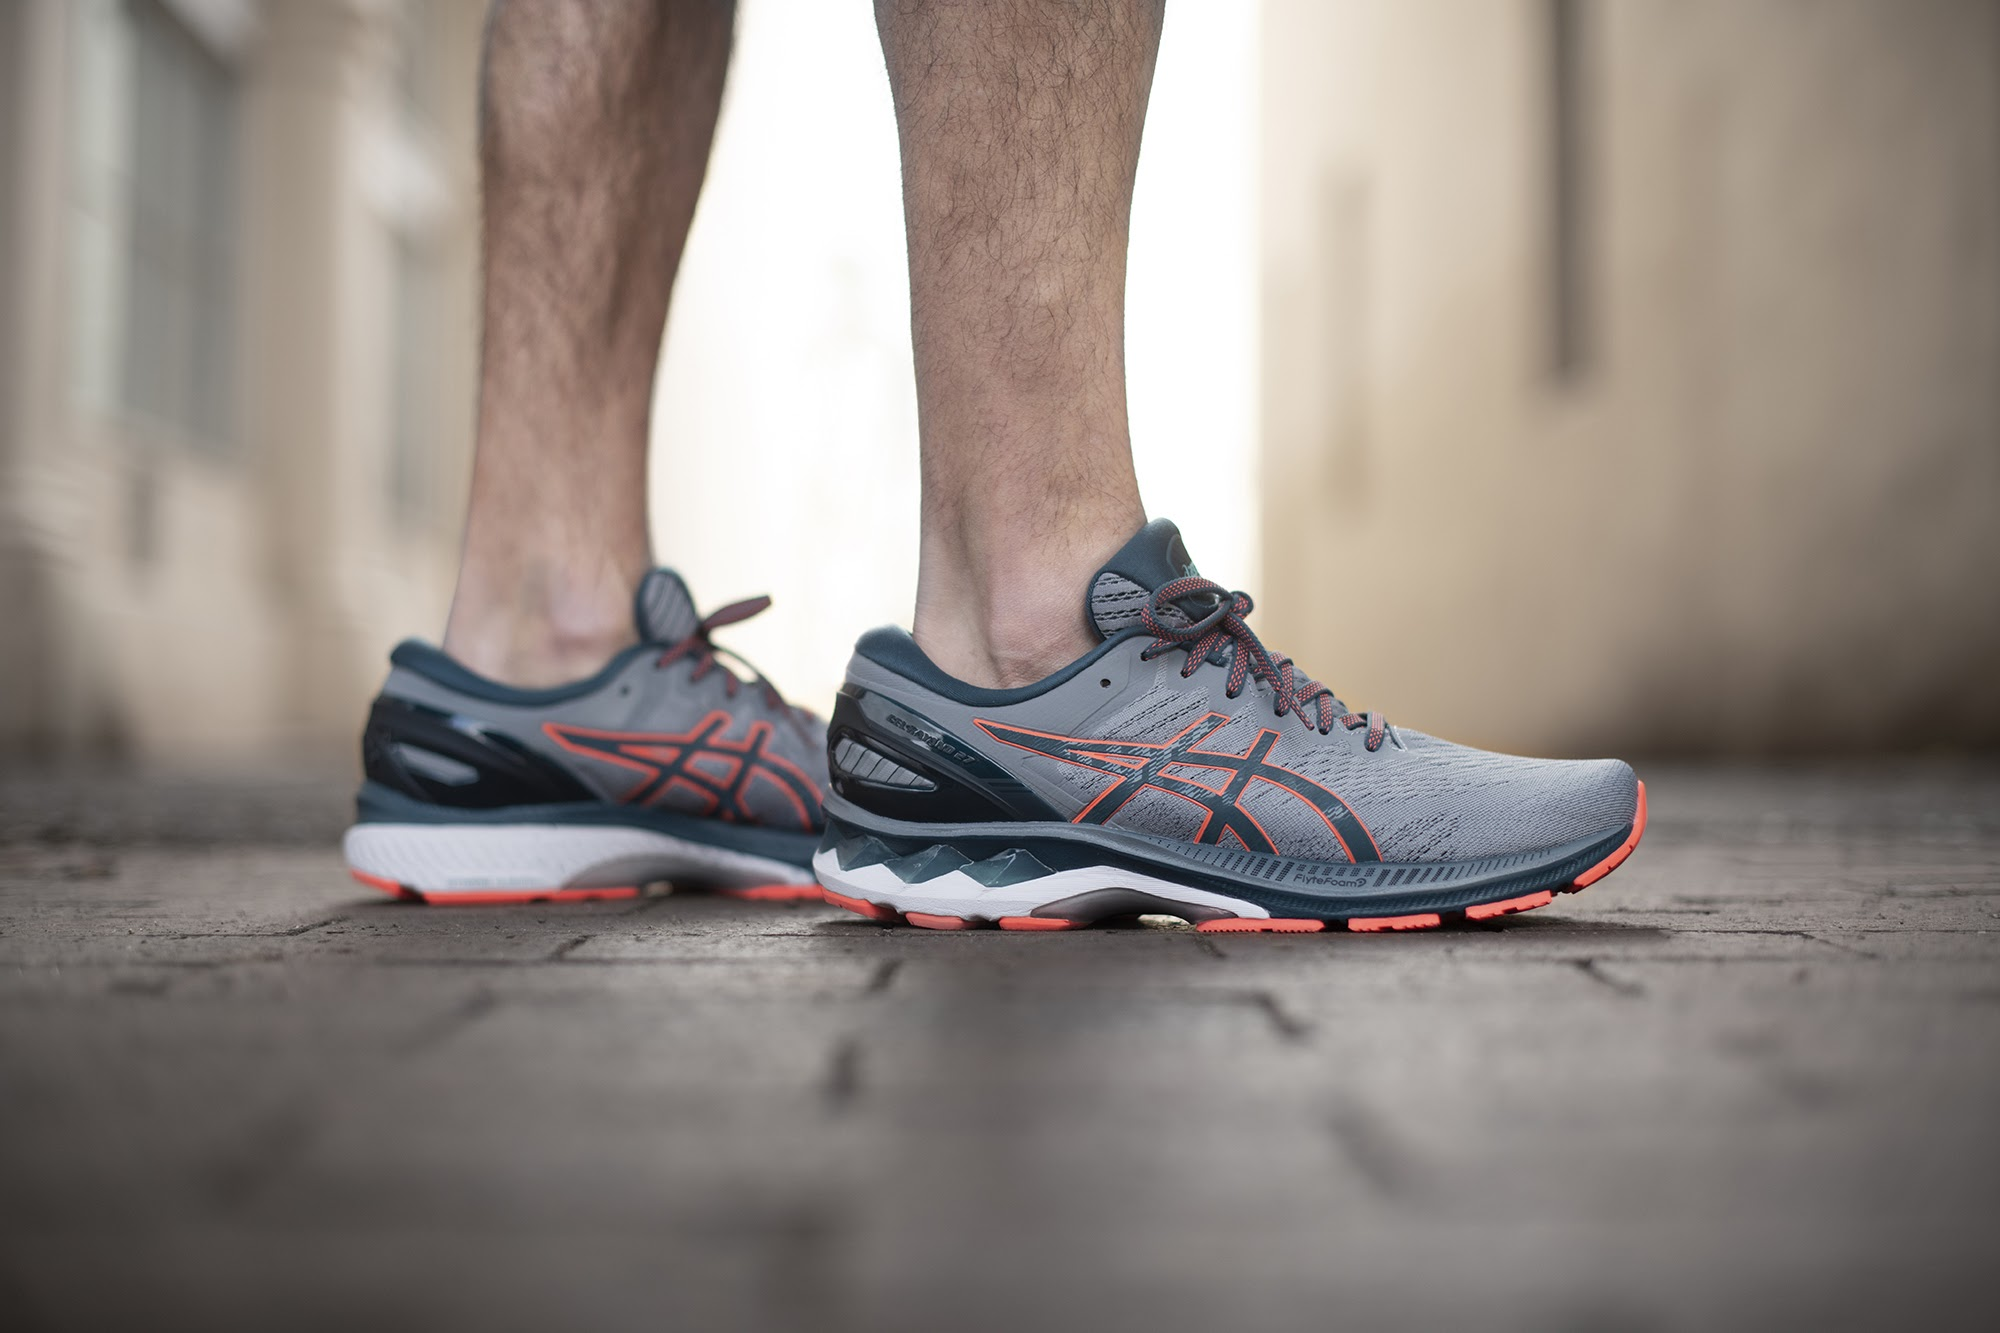 celos Interior Abultar  ASICS GEL-Kayano 27 Review: It's Back! The #1 Stability Running Shoe is  Better Than Ever